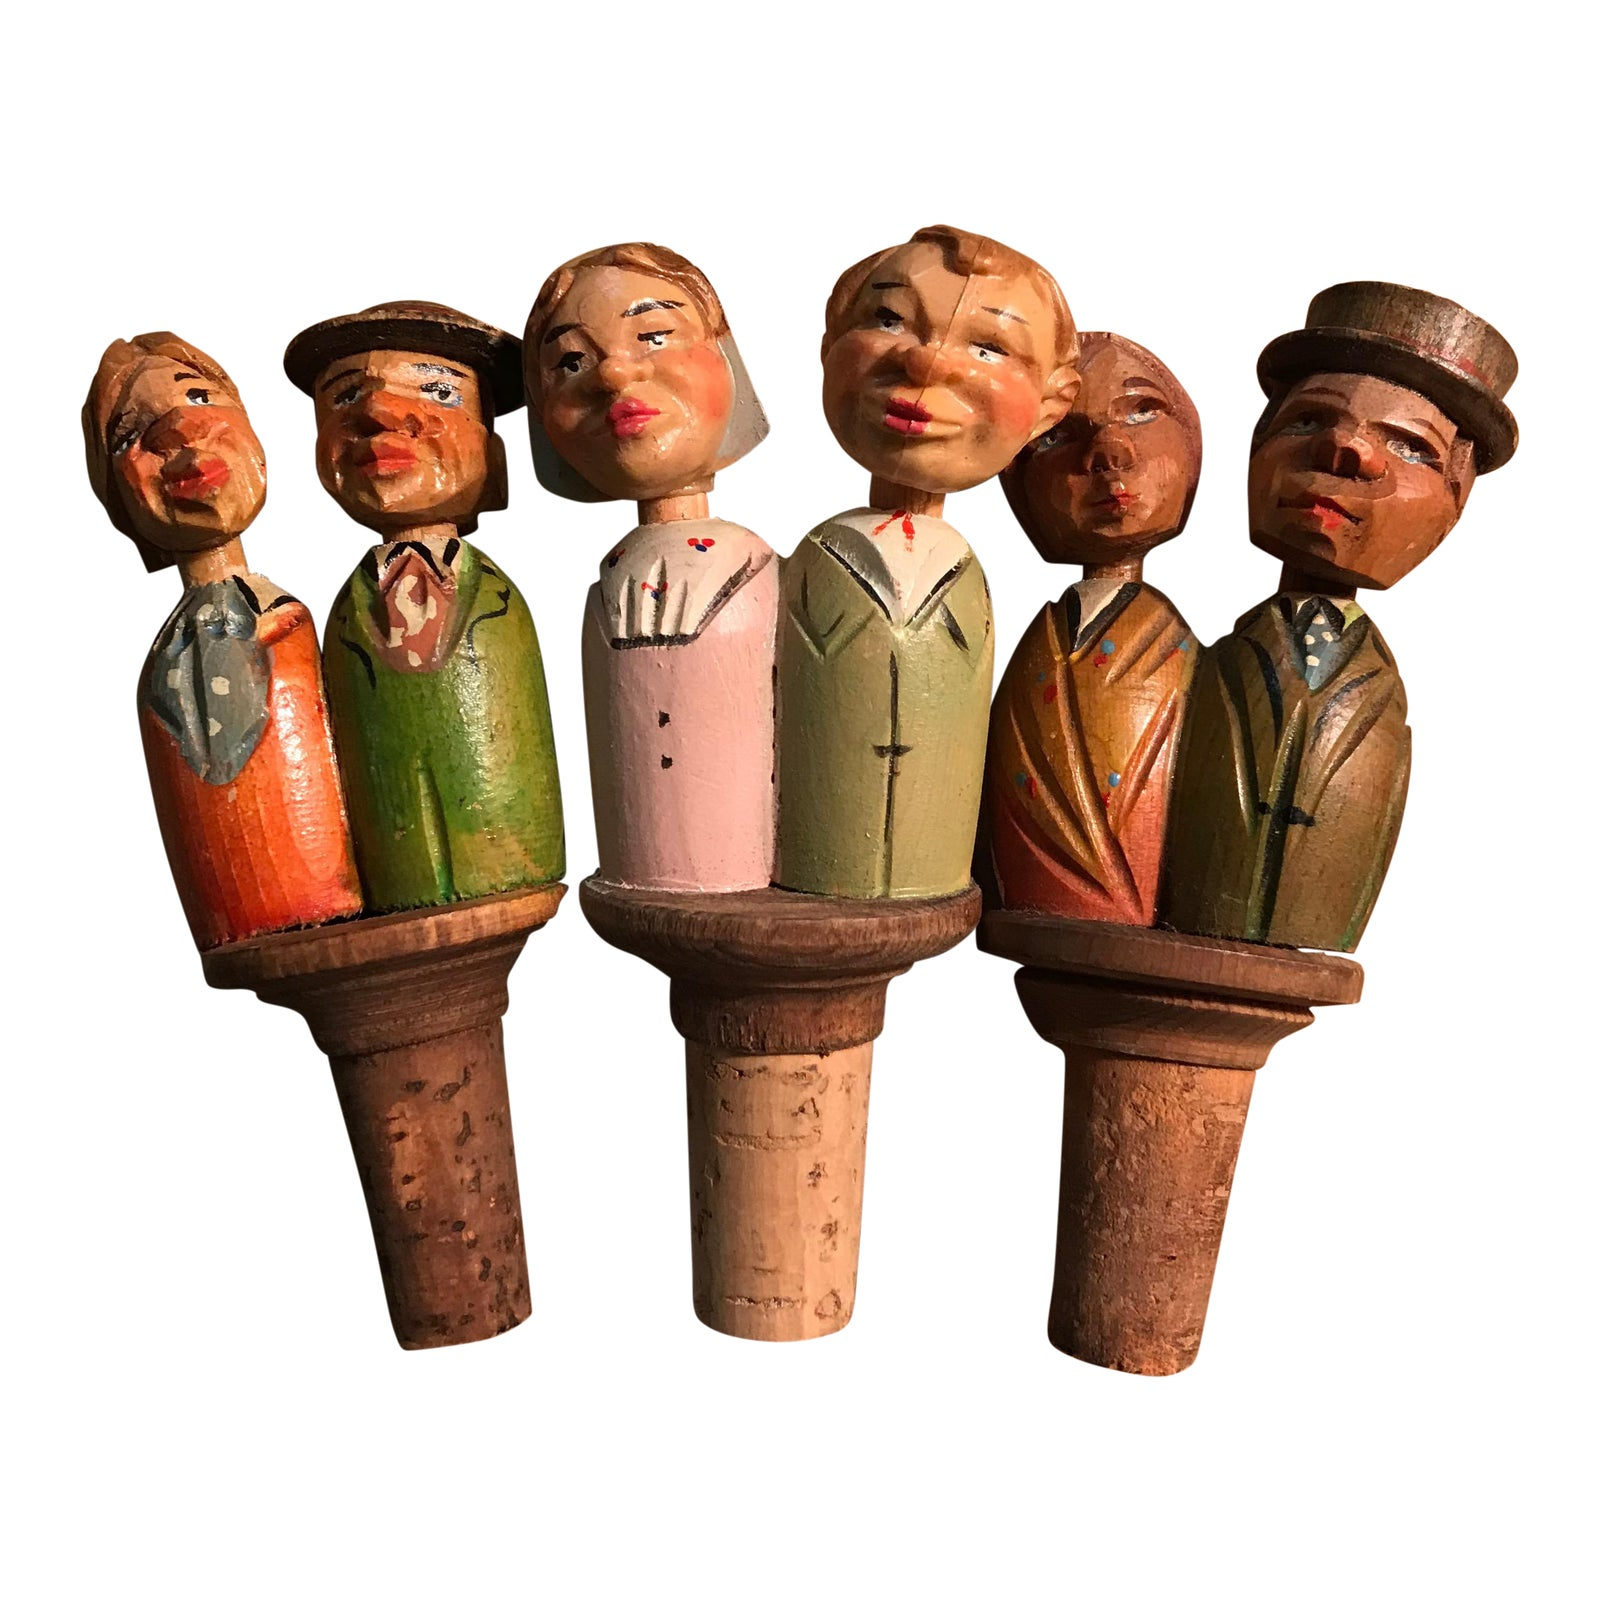 Anri Italian Wood Hand Carved Vintage Bottle Stoppers